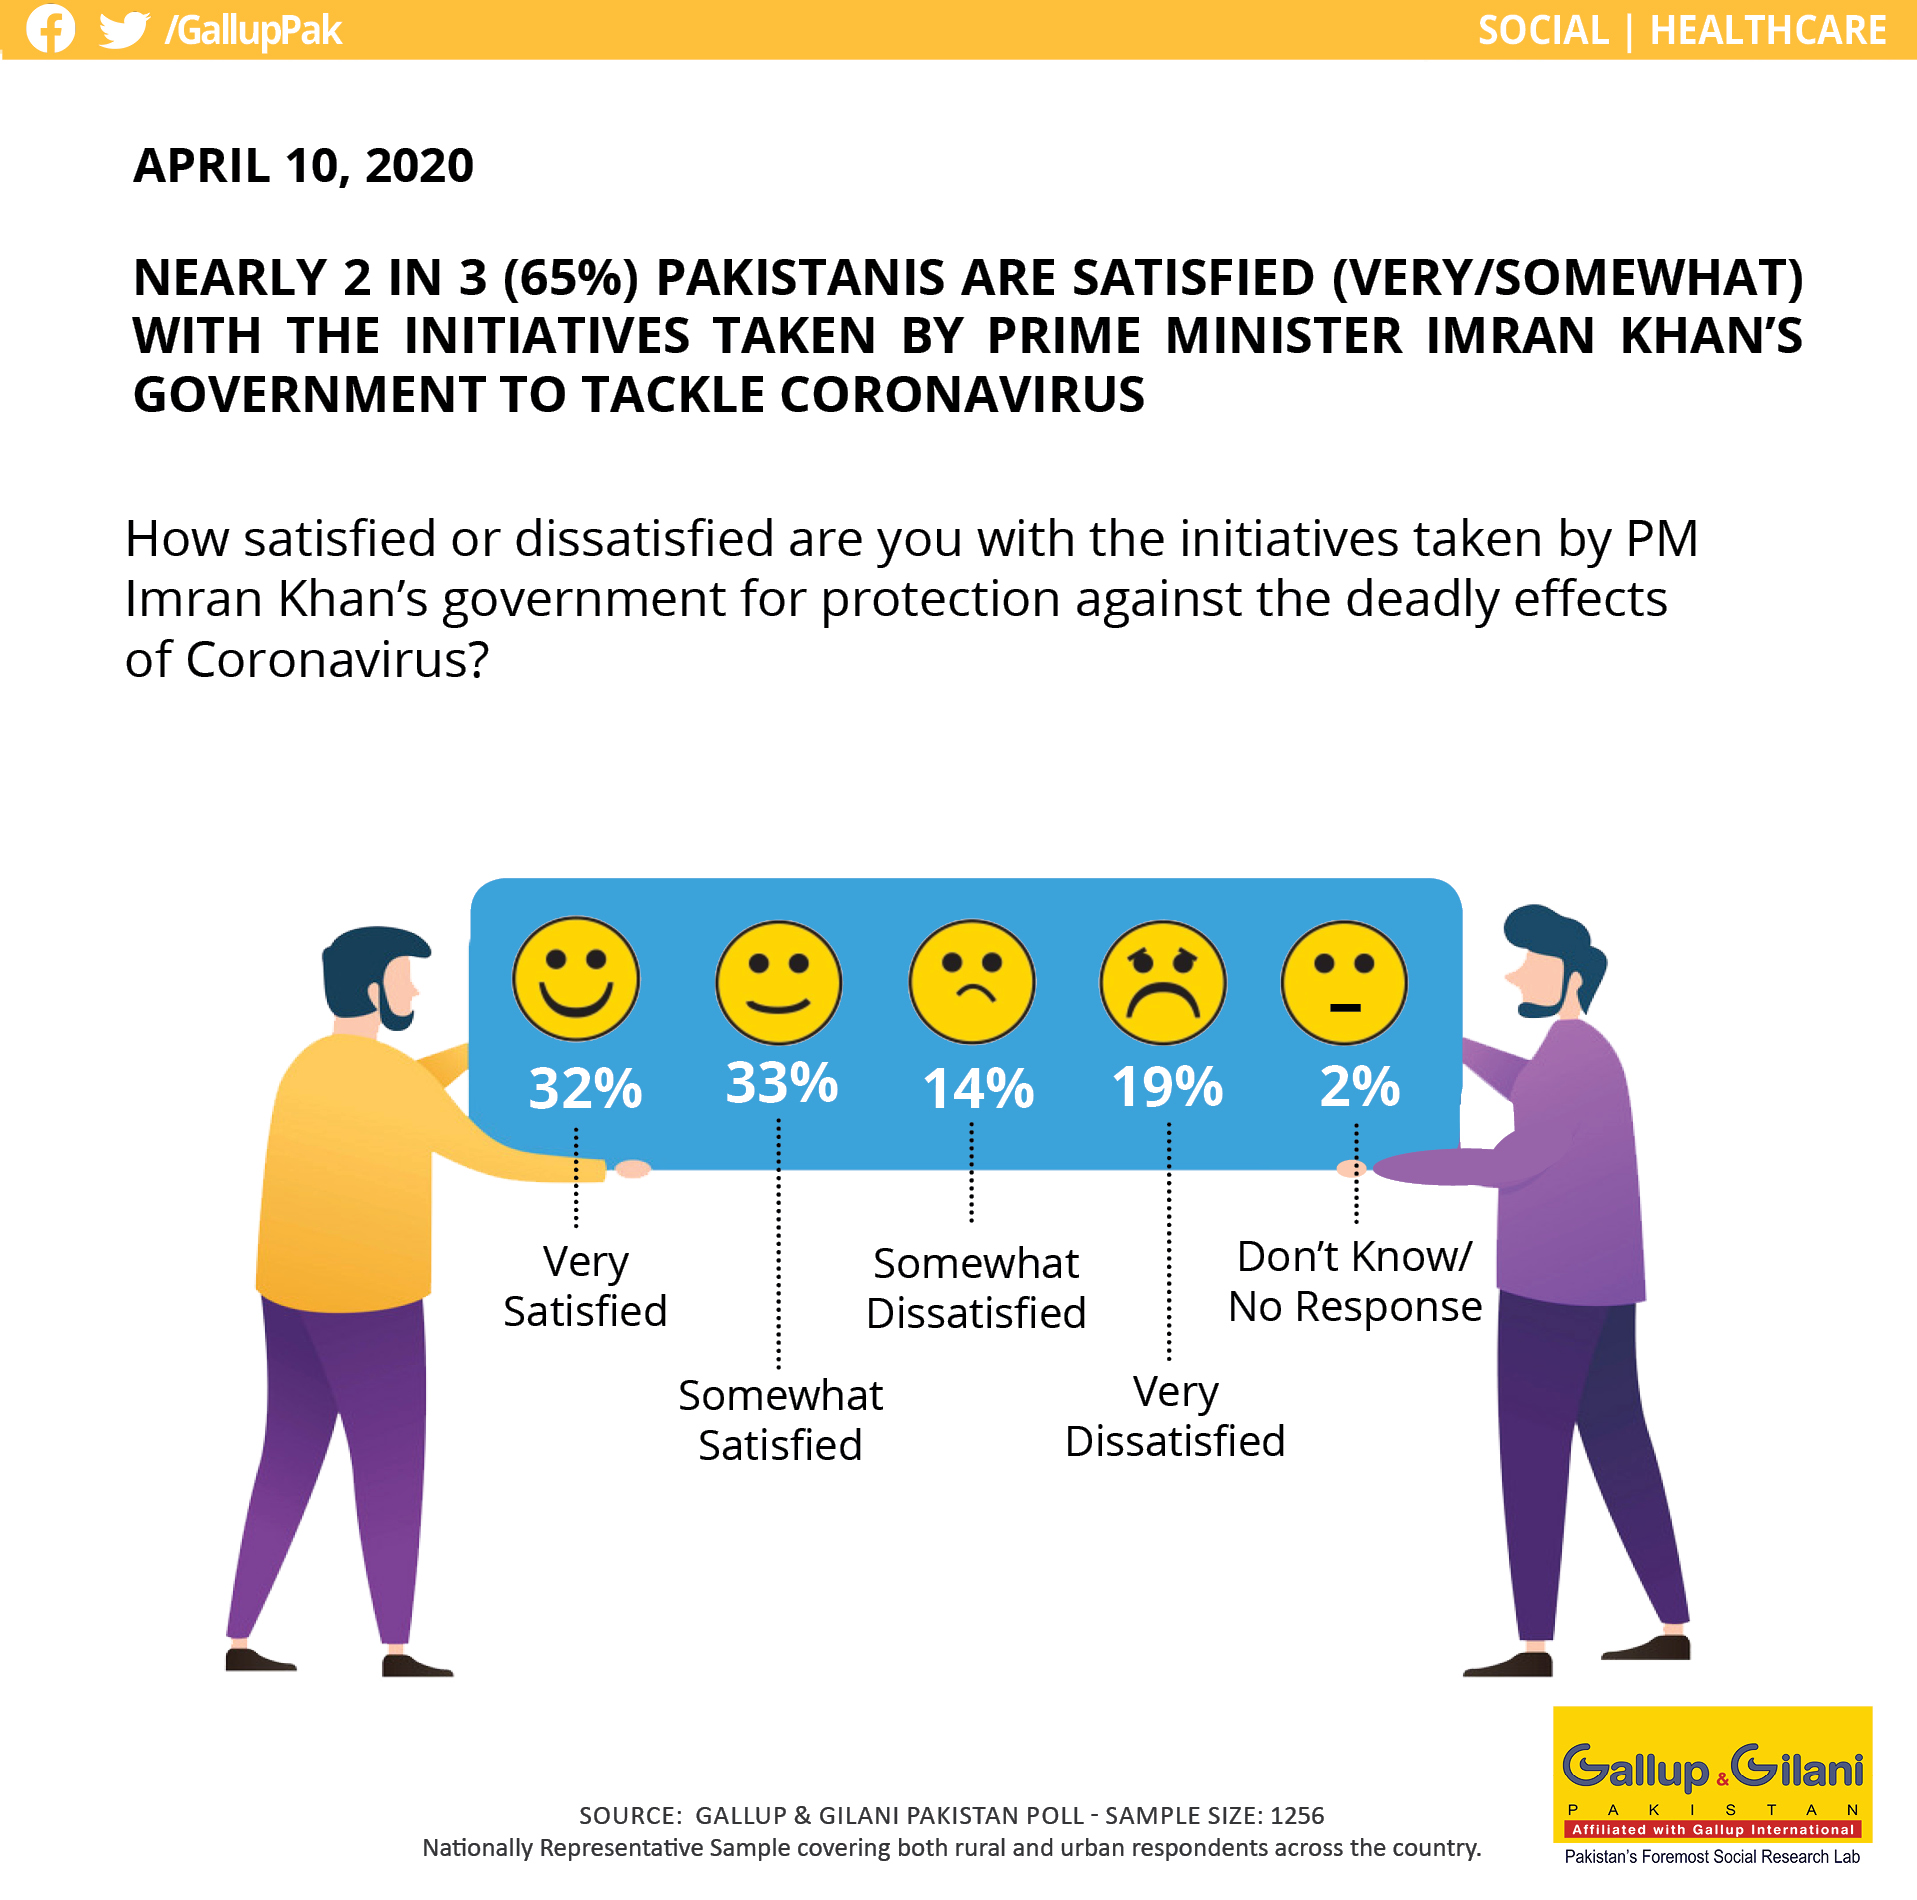 Gallup Pakistan On Twitter Nearly 2 In 3 65 Pakistanis Are Satisfied Very Somewhat With The Initiatives Taken By Pm Imran Khan S Government To Tackle Coronavirus Gallup Gilani Pakistan Poll Coronavirusoutbreak Coronaoutbreak Covid